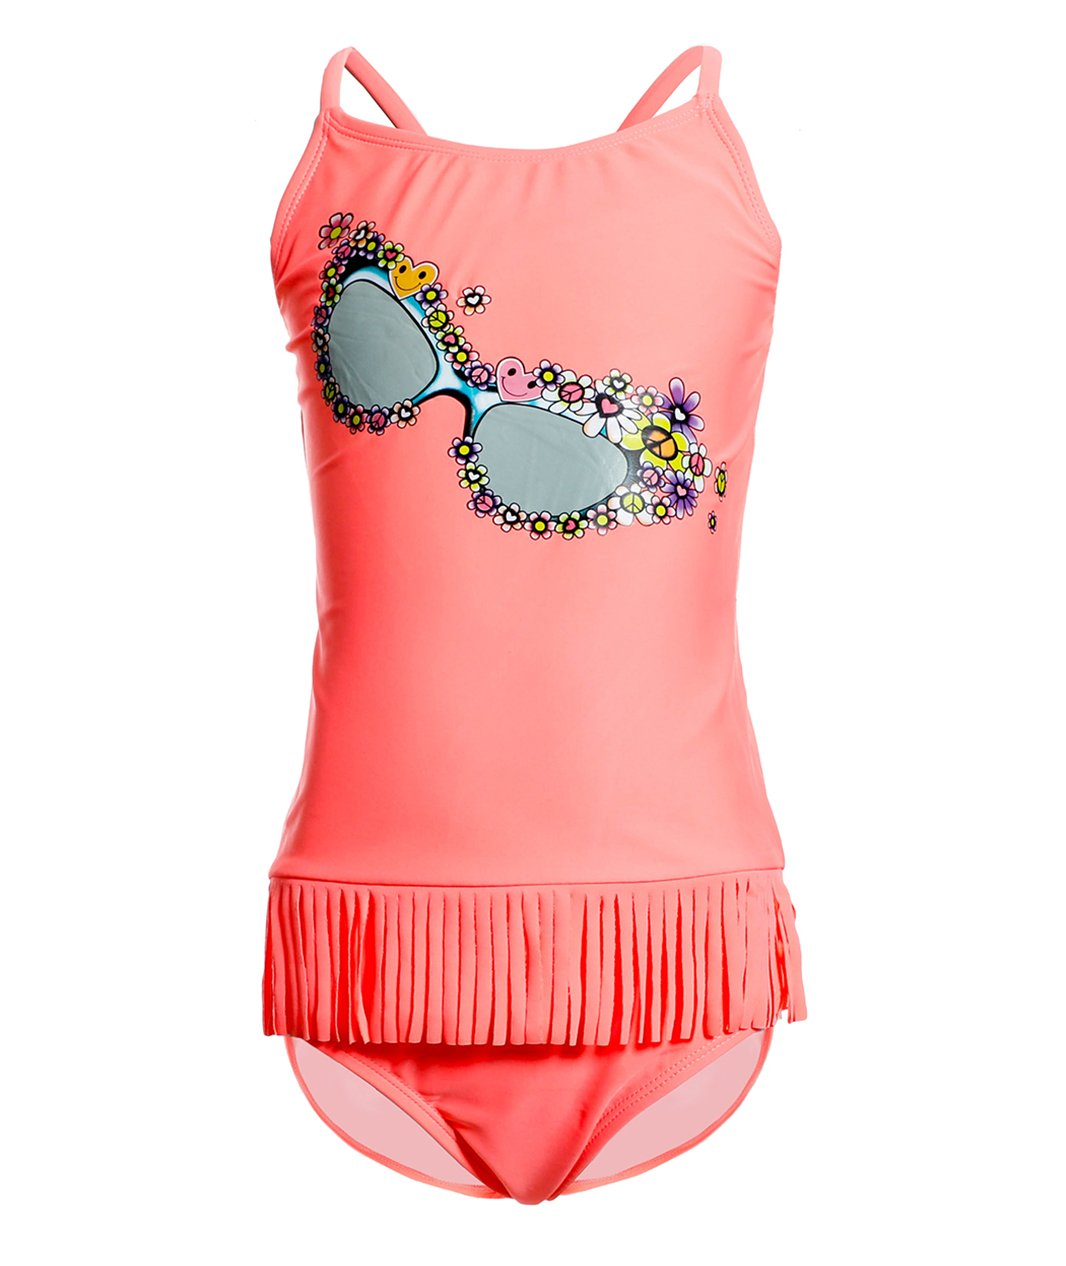 BELLOO Girls Tassel Thin Straps Tankini Sets Two Piece Bathing Suits, Glasses, 7-8